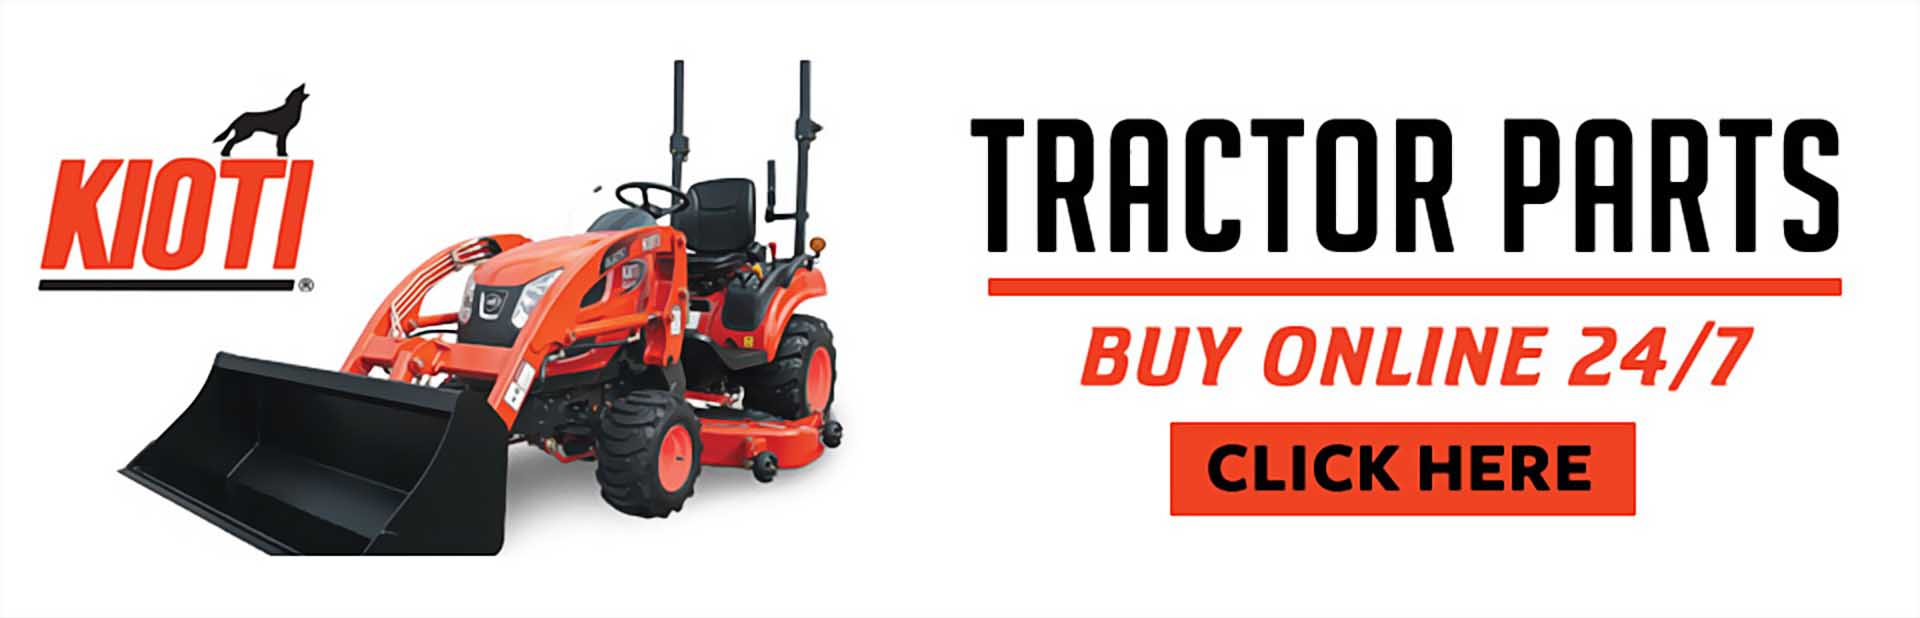 KIOTI Tractor Parts: Click here to buy online.